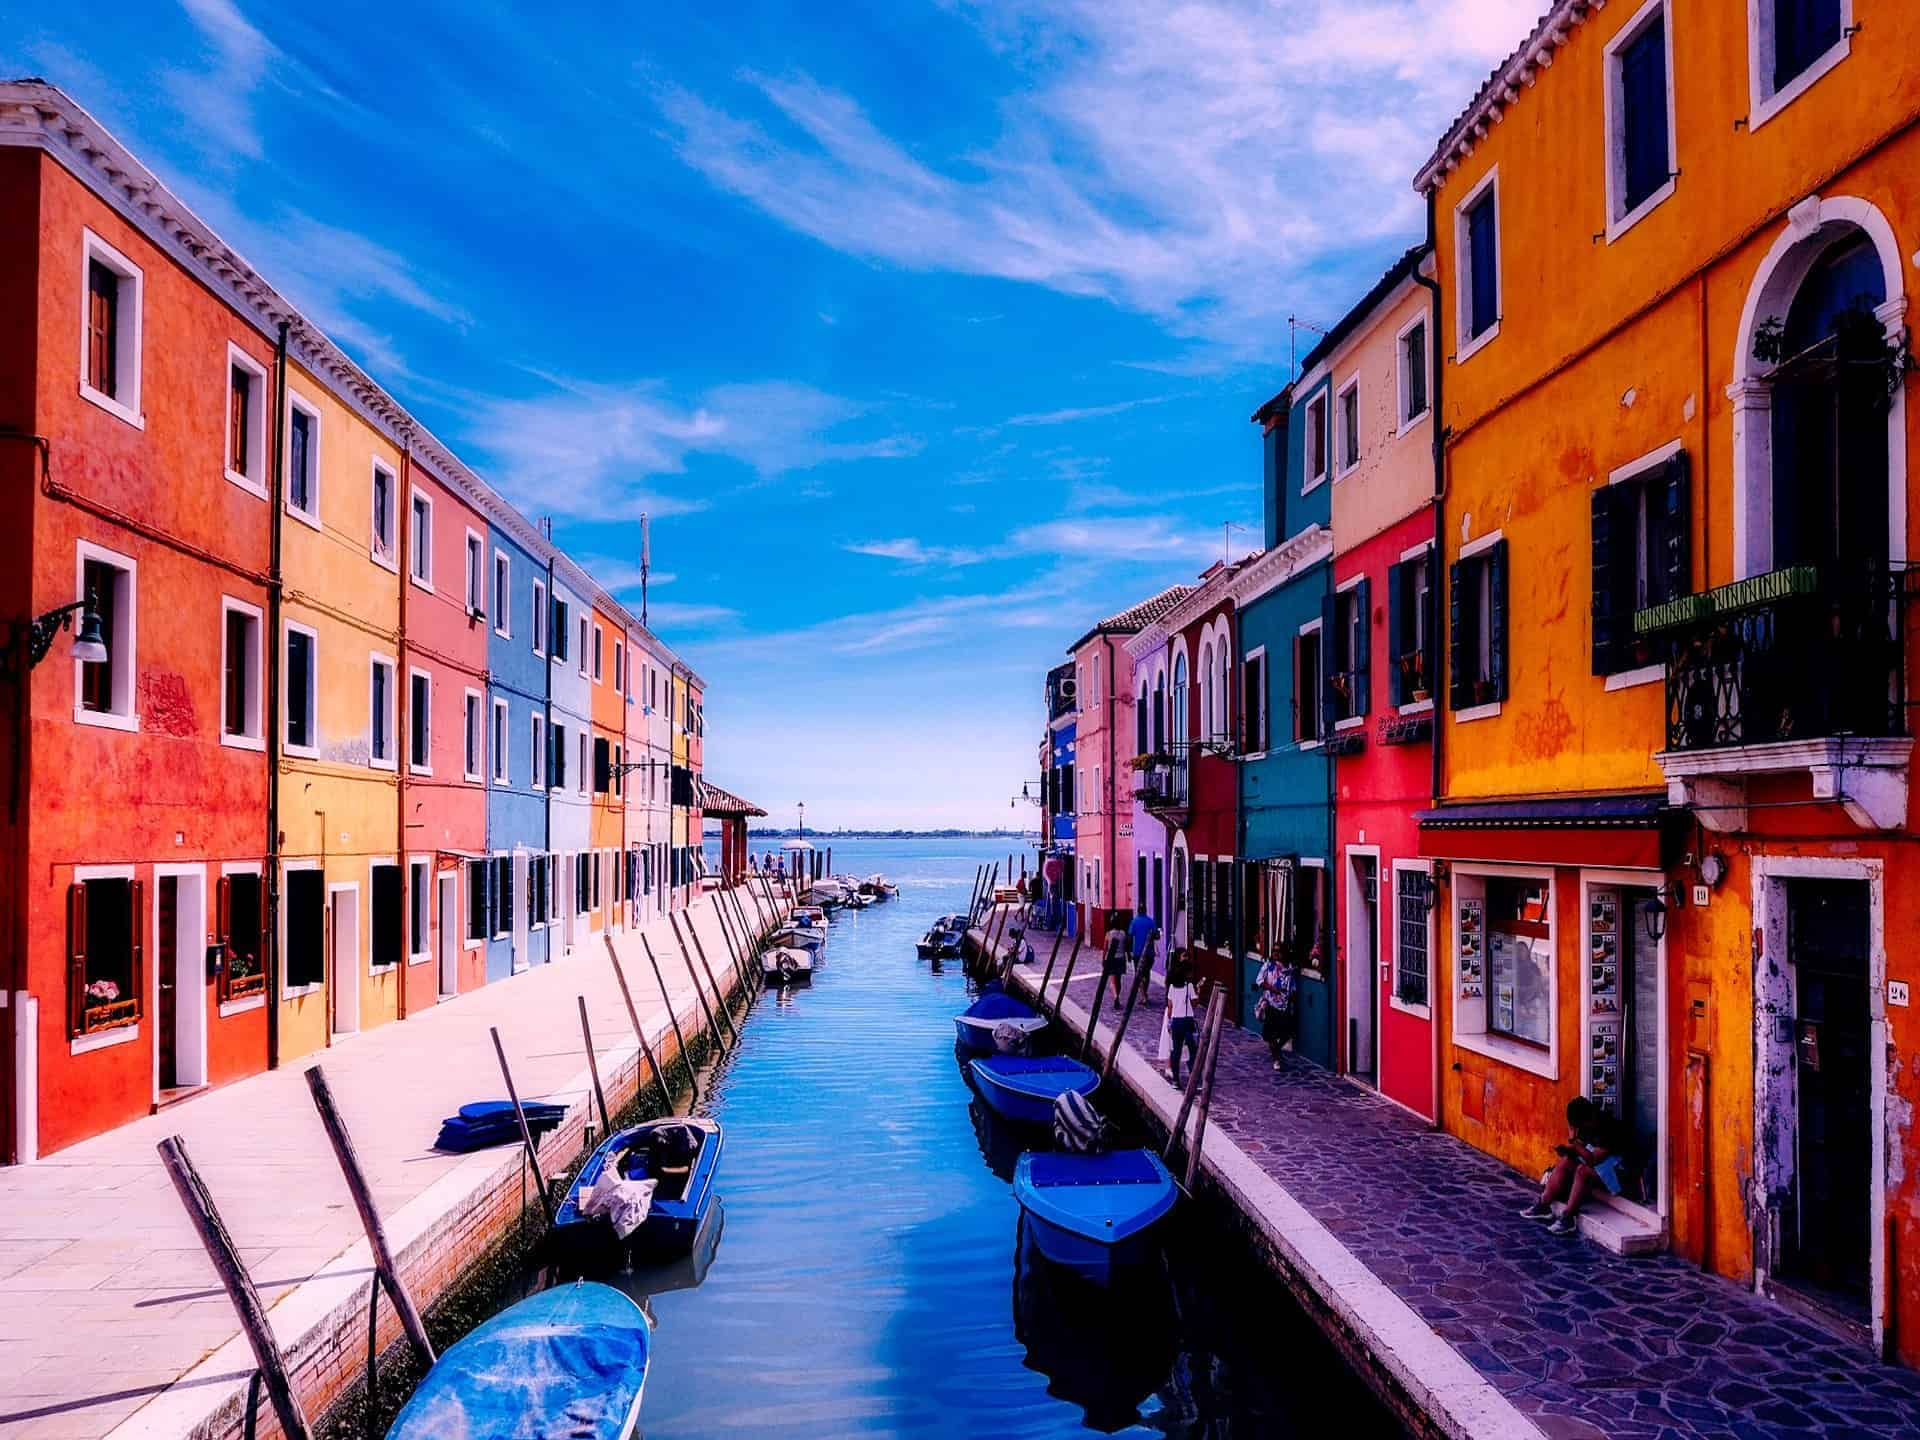 Murano Burano Torcello Day Trip